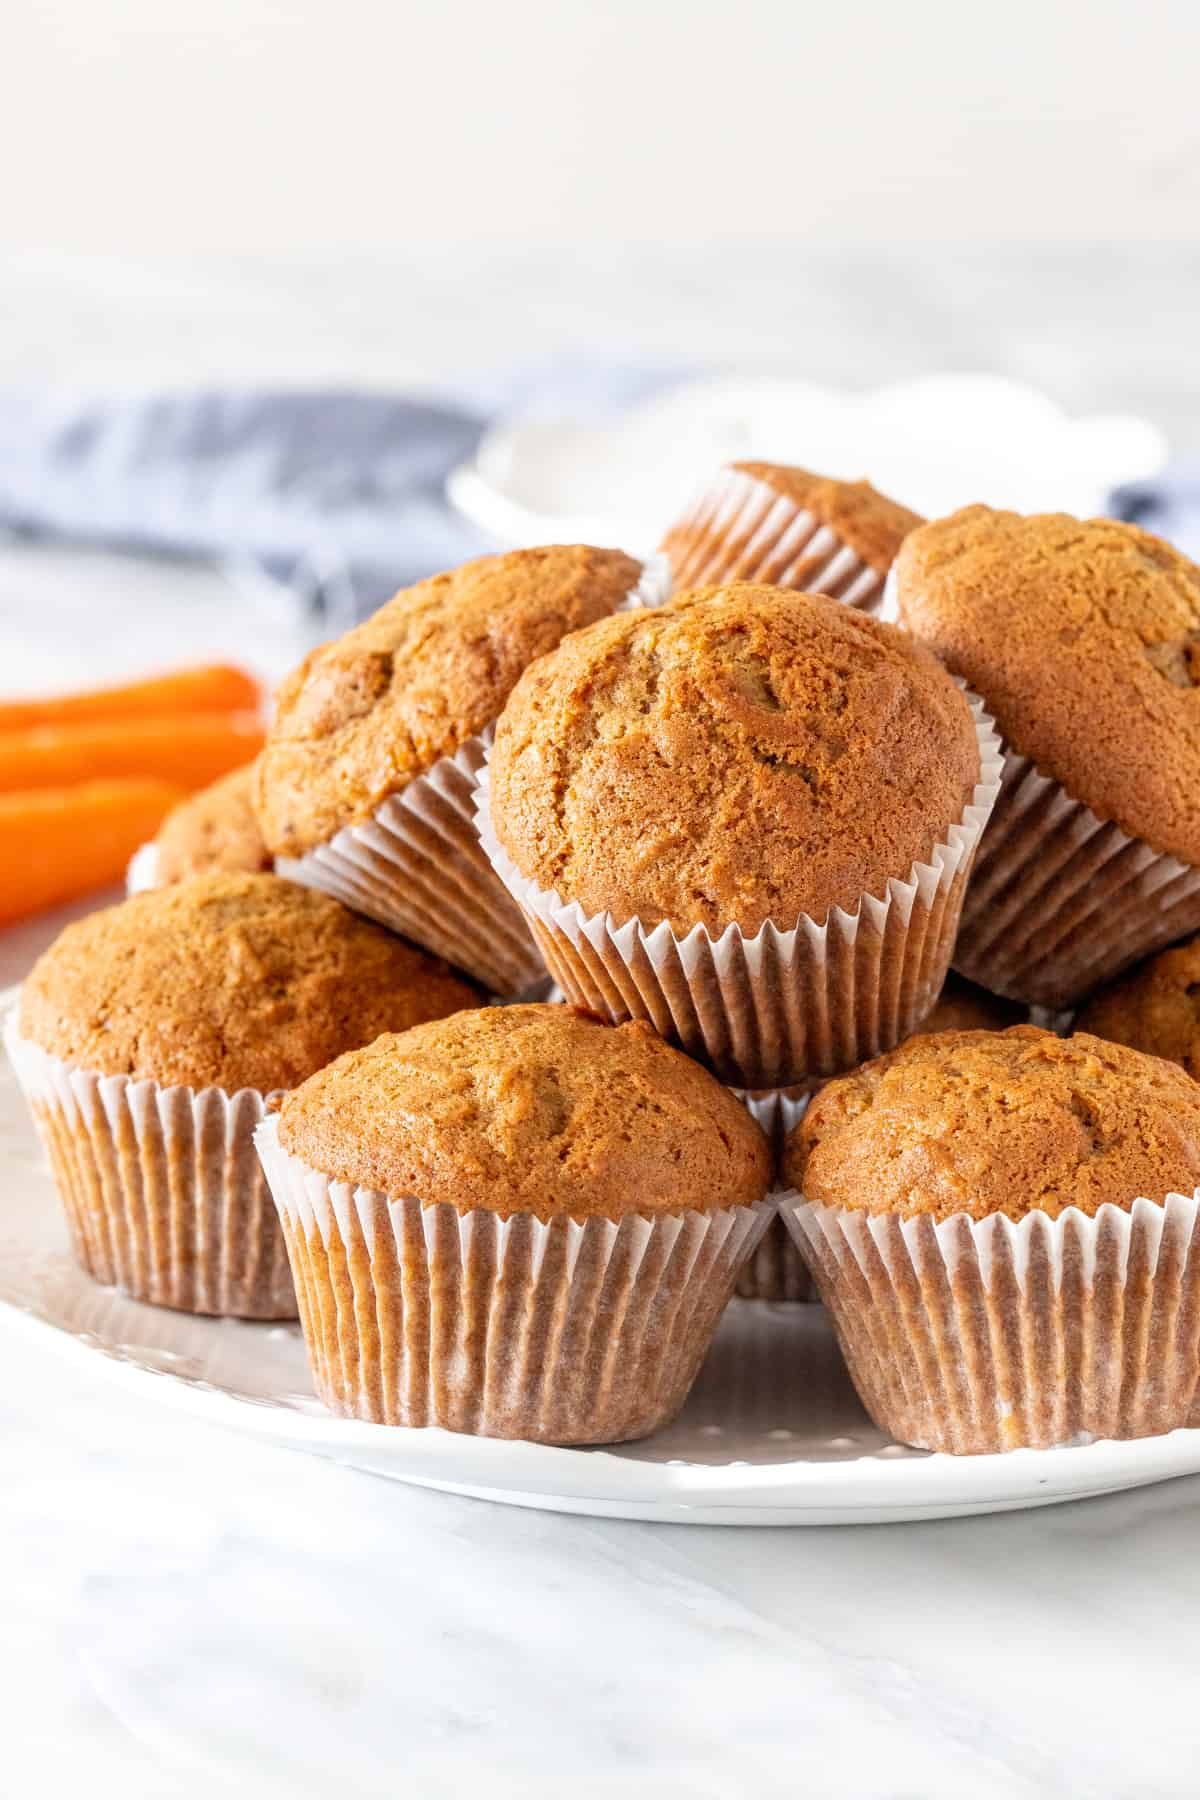 Plate of carrot muffins